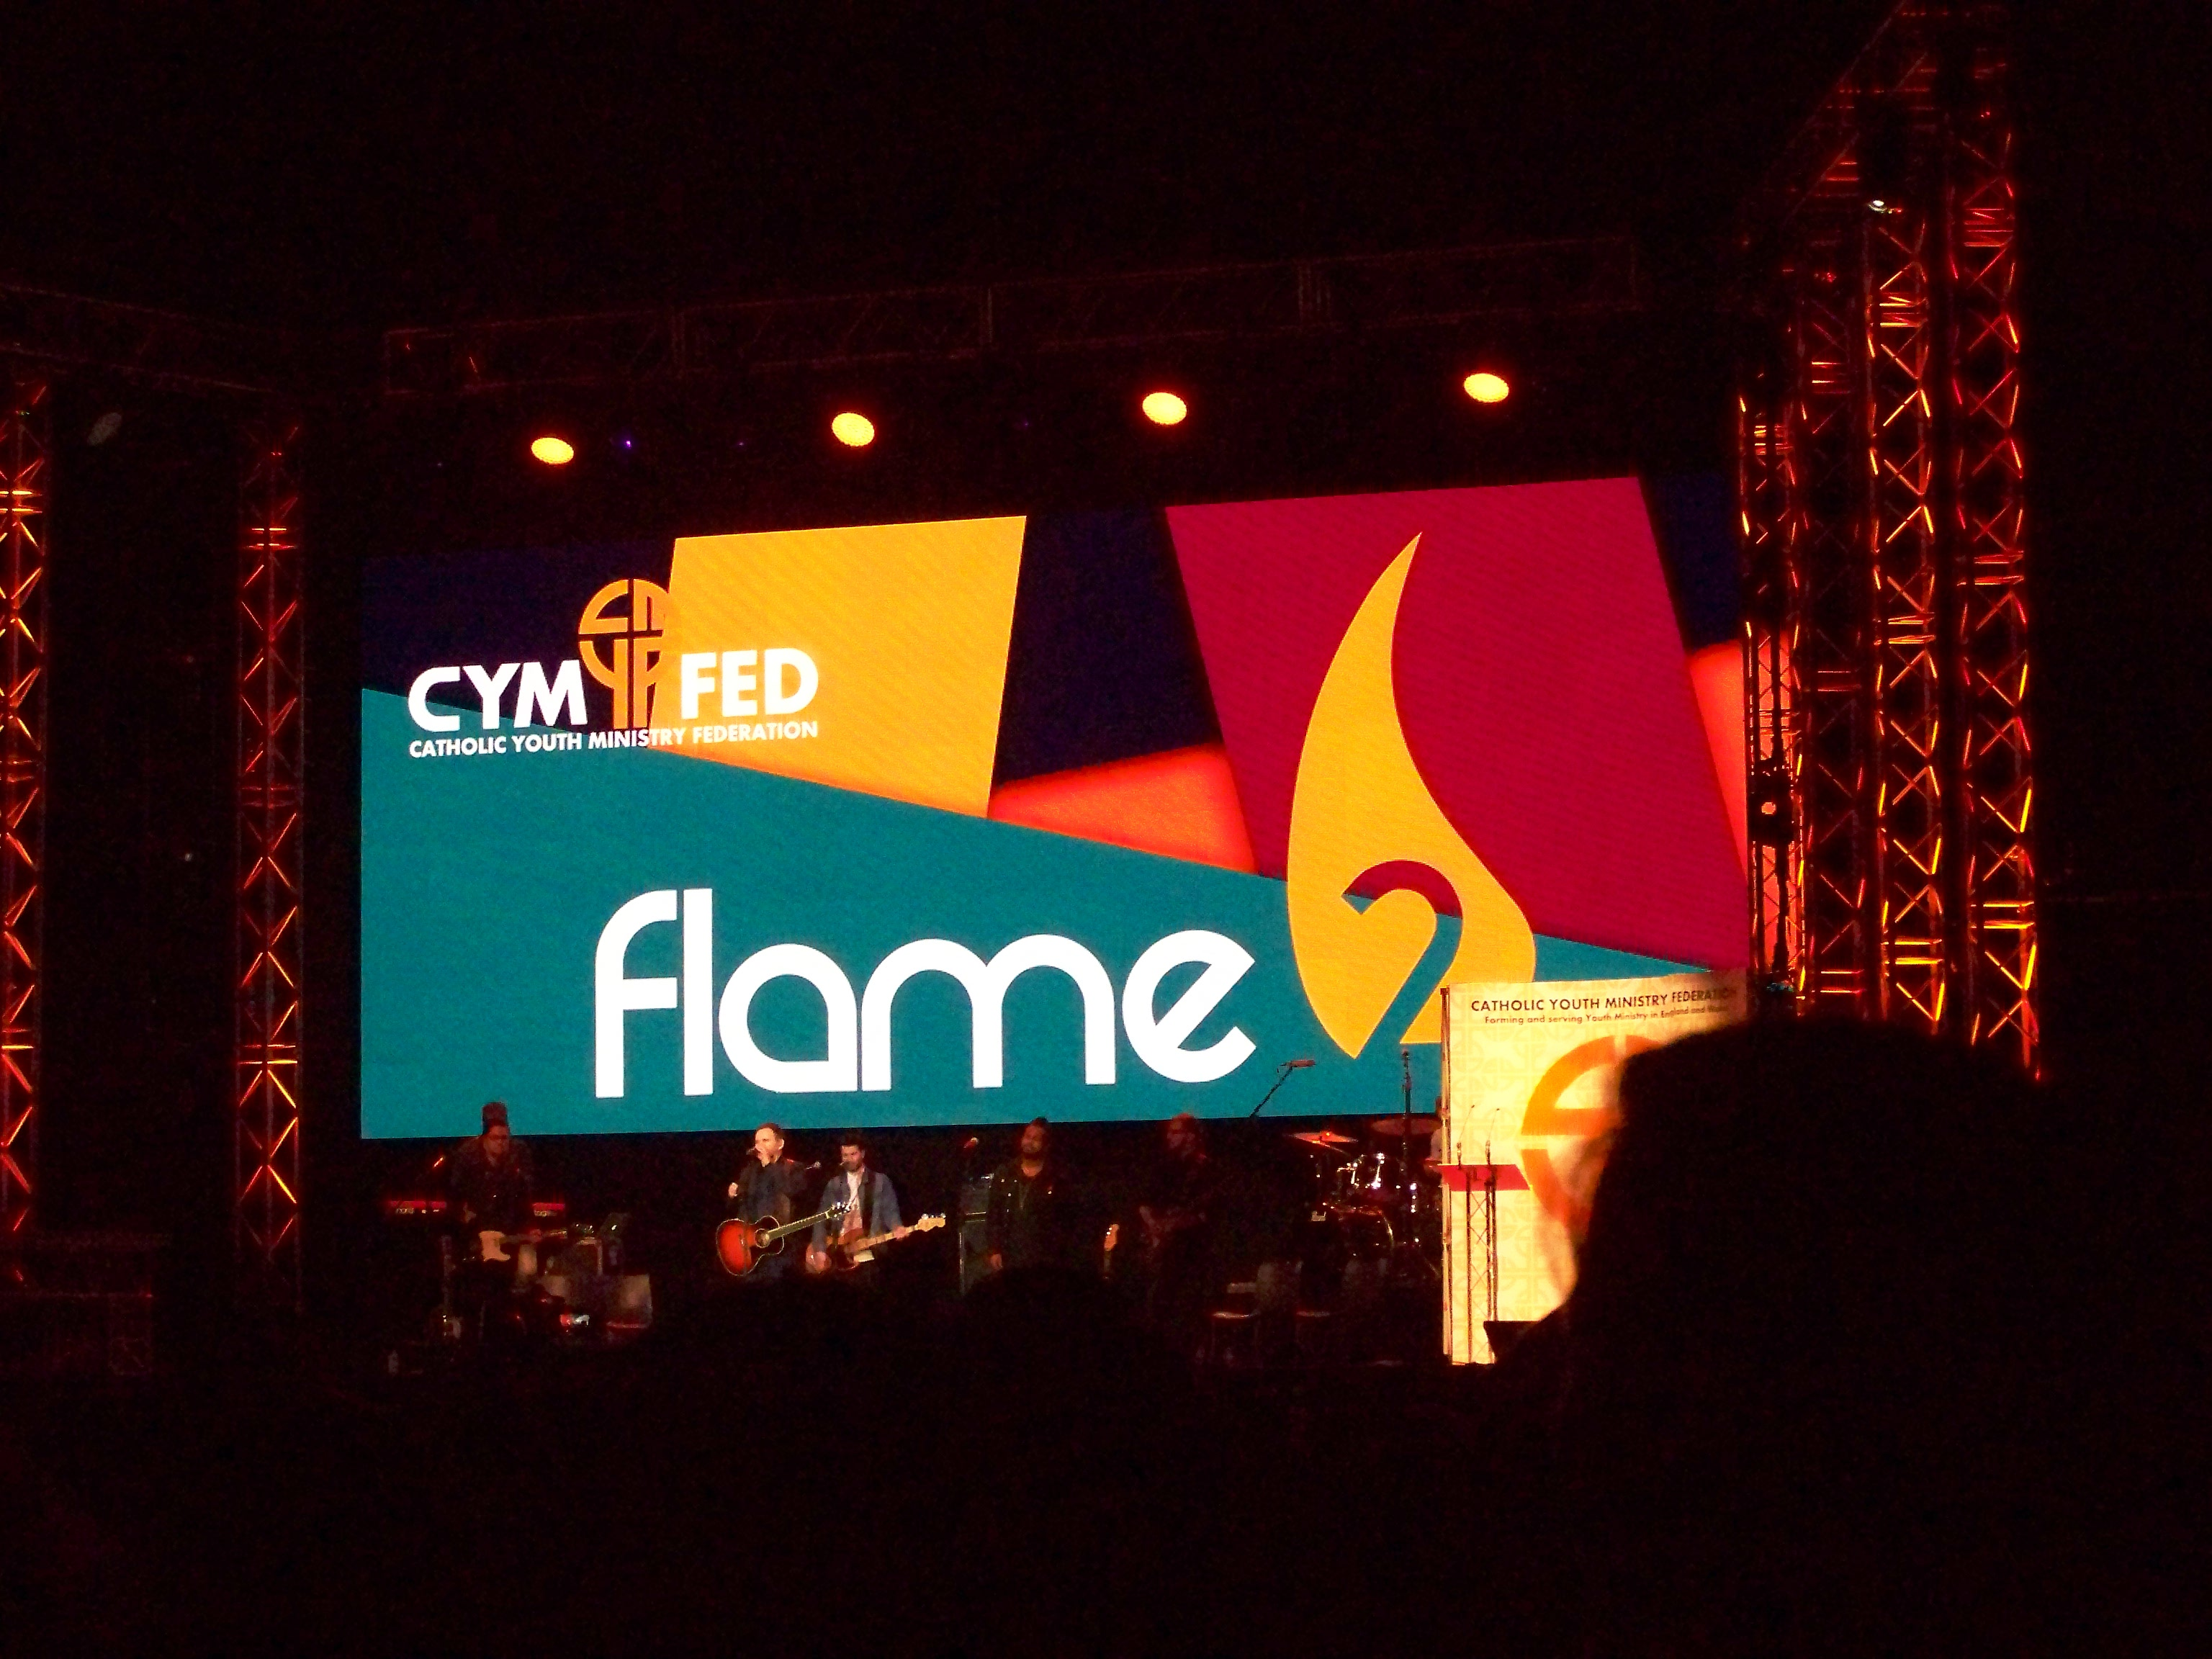 flame7